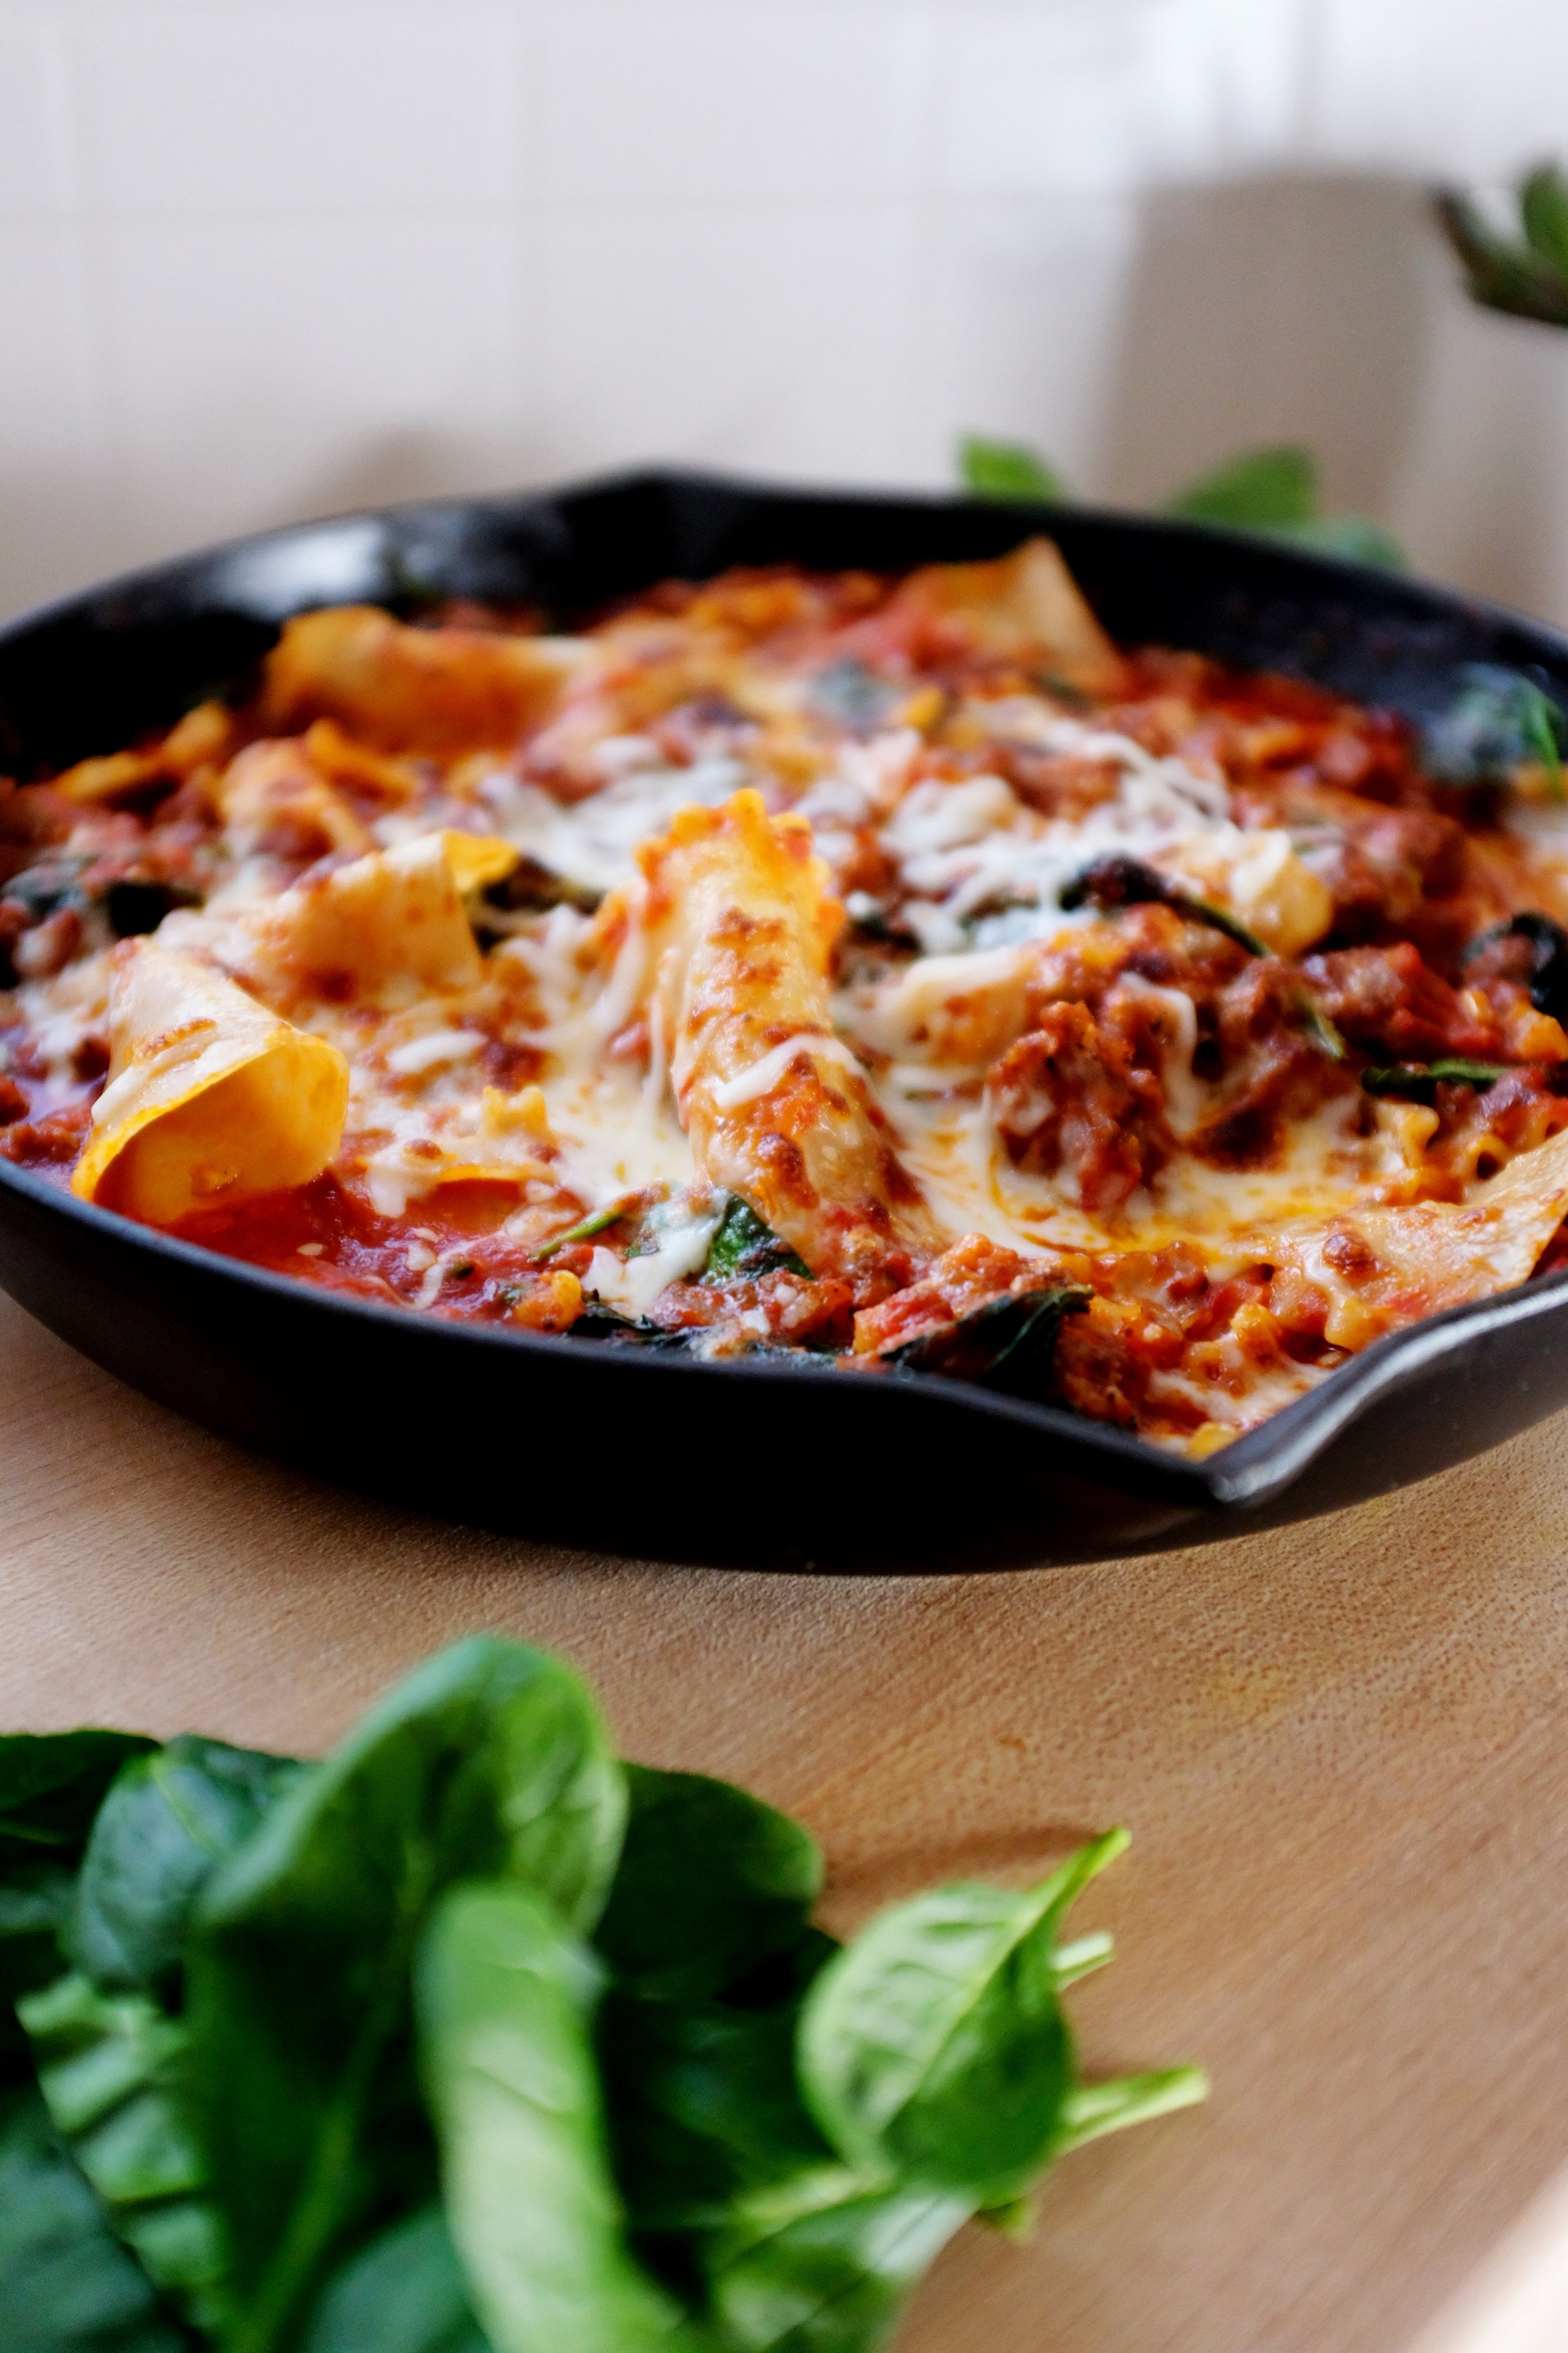 Easy Weeknight Recipe ft. Gluten Free Lasagna from Thrive Market